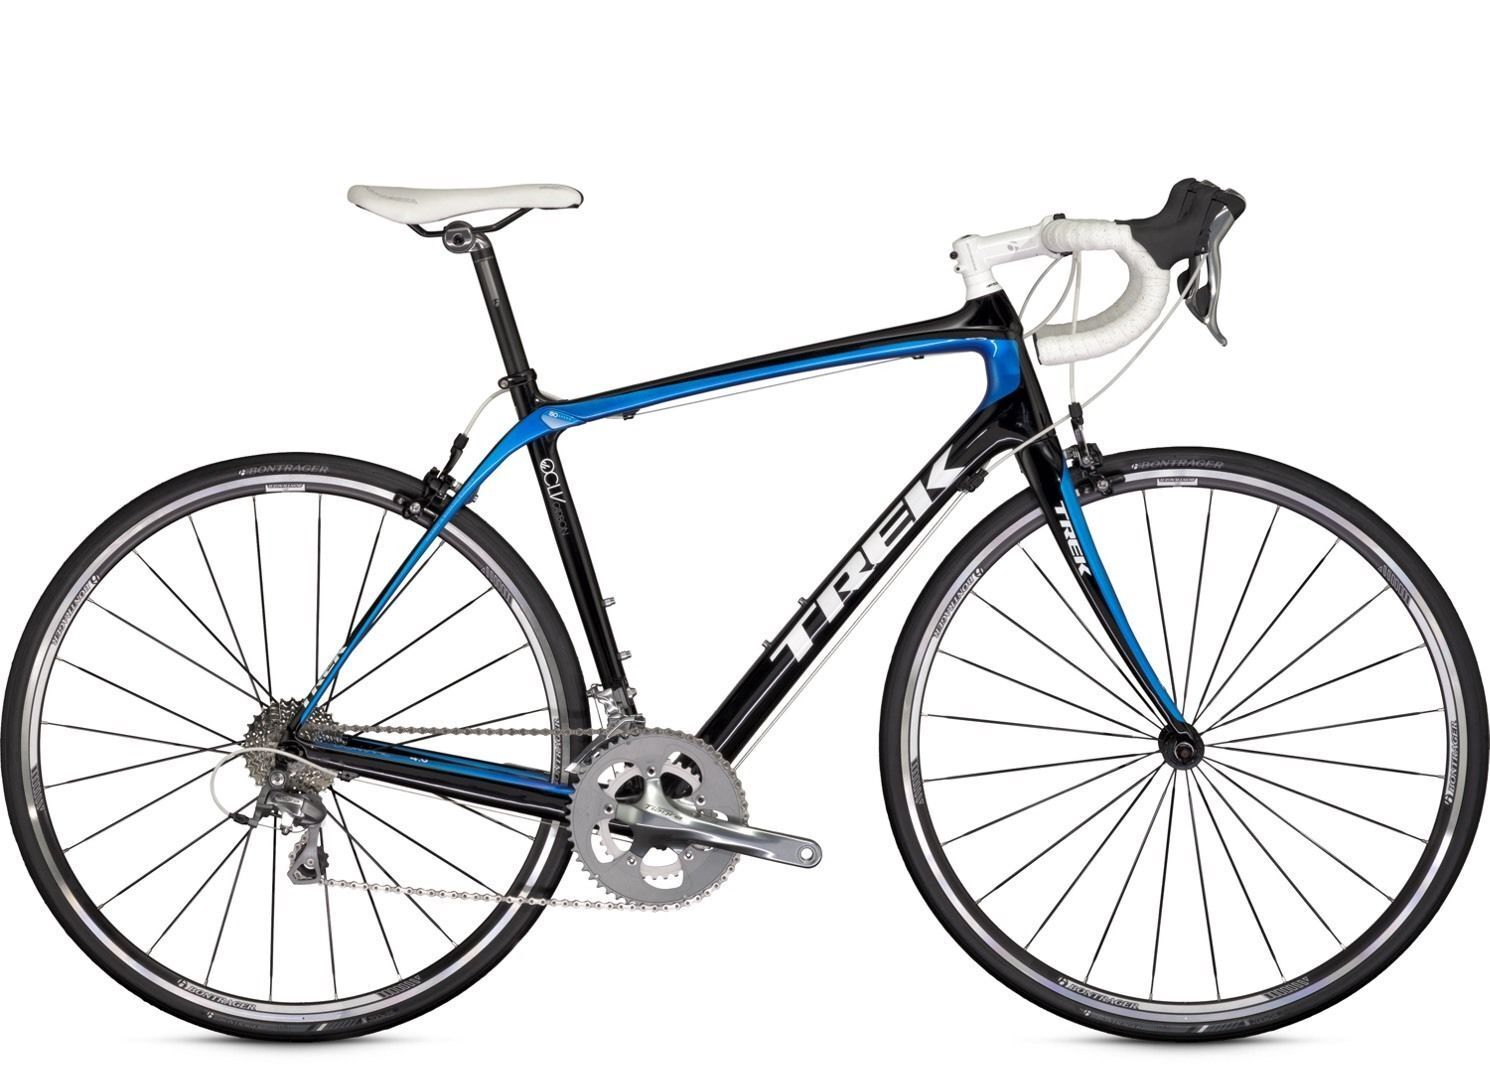 The domane 4 0 serves as a great endurance road bike thanks to its isospeed system that isolates the seat stays and down tube from the seat tube